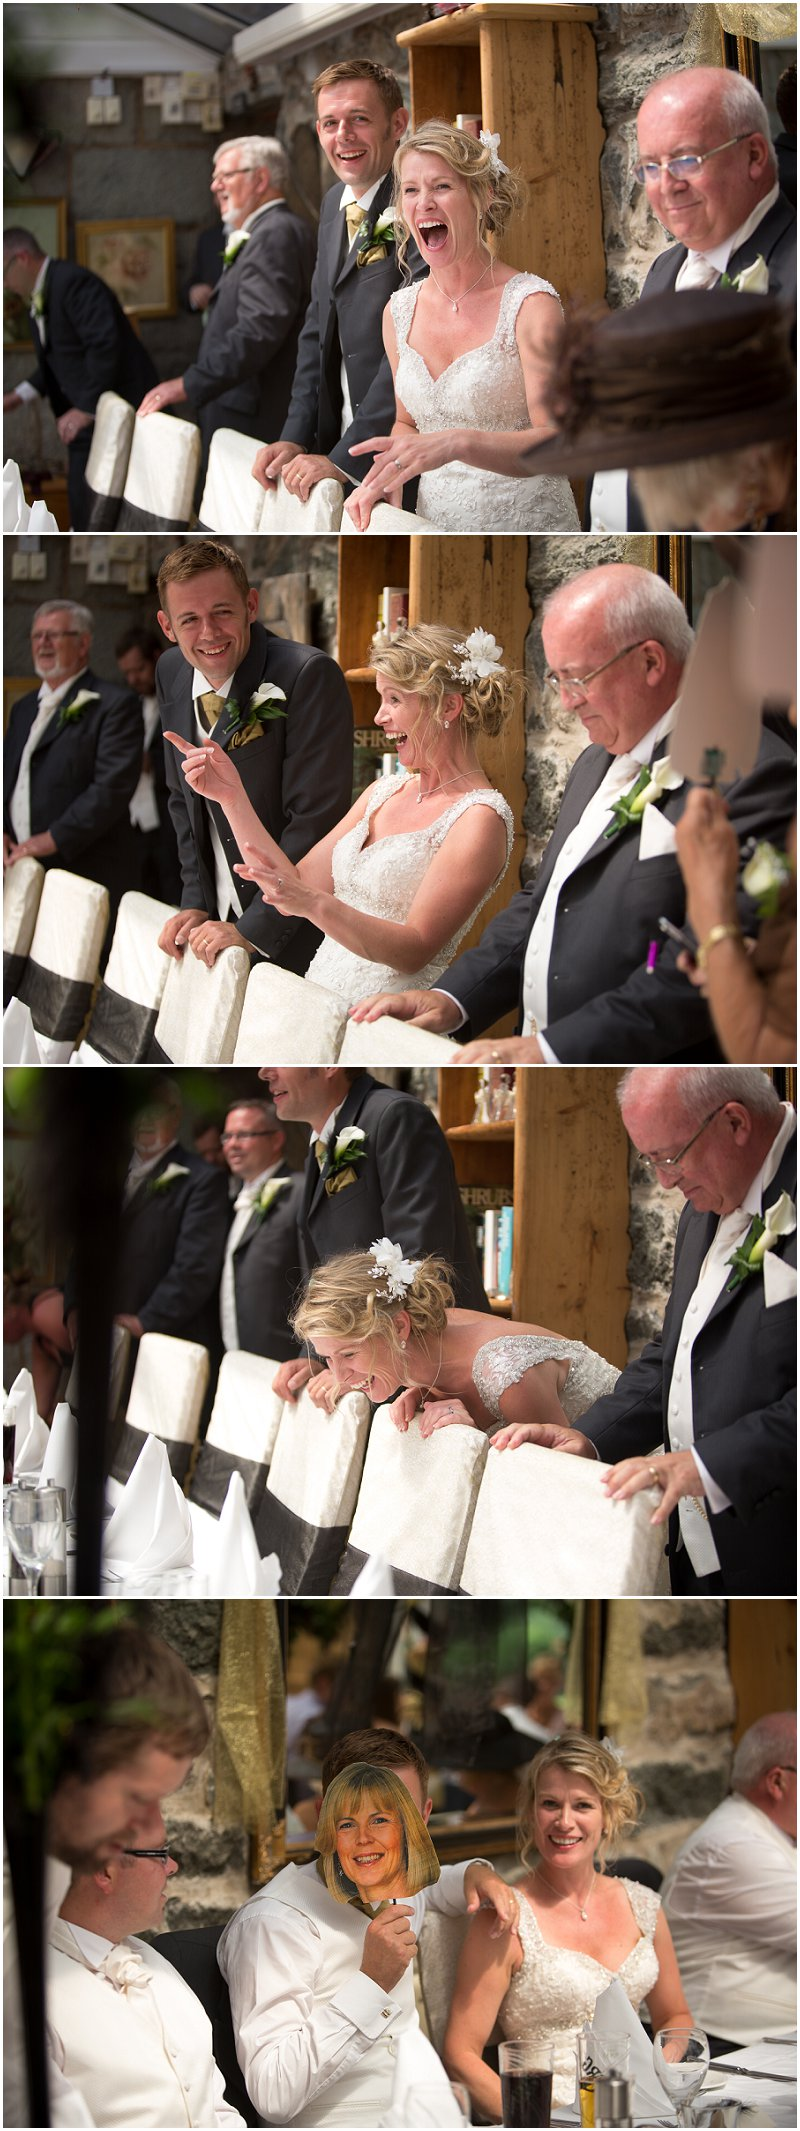 Hilarious laughter during speeches at a Wales wedding